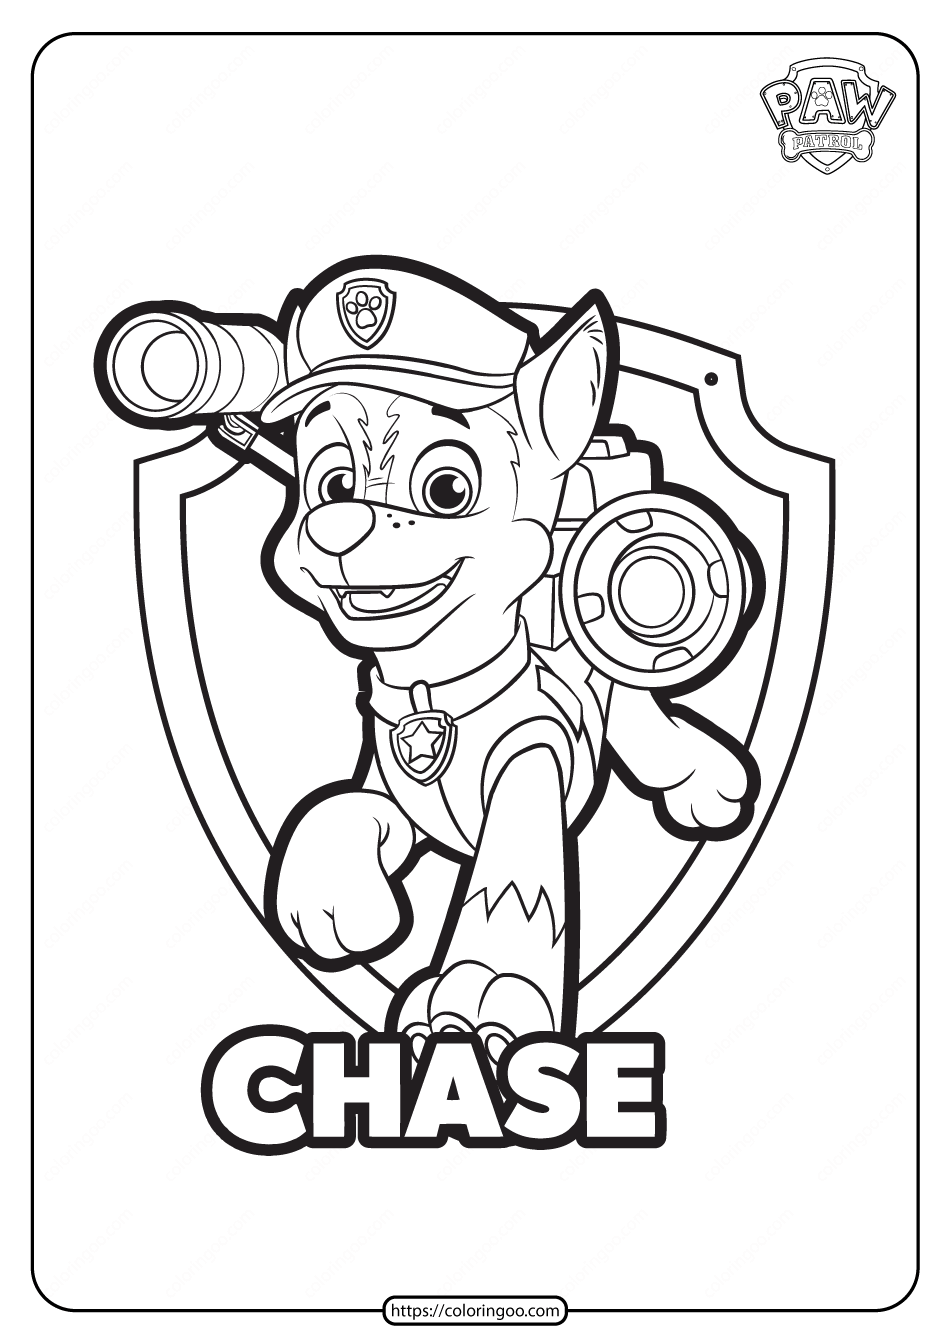 Free Printable Paw Patrol Chase Coloring Pages